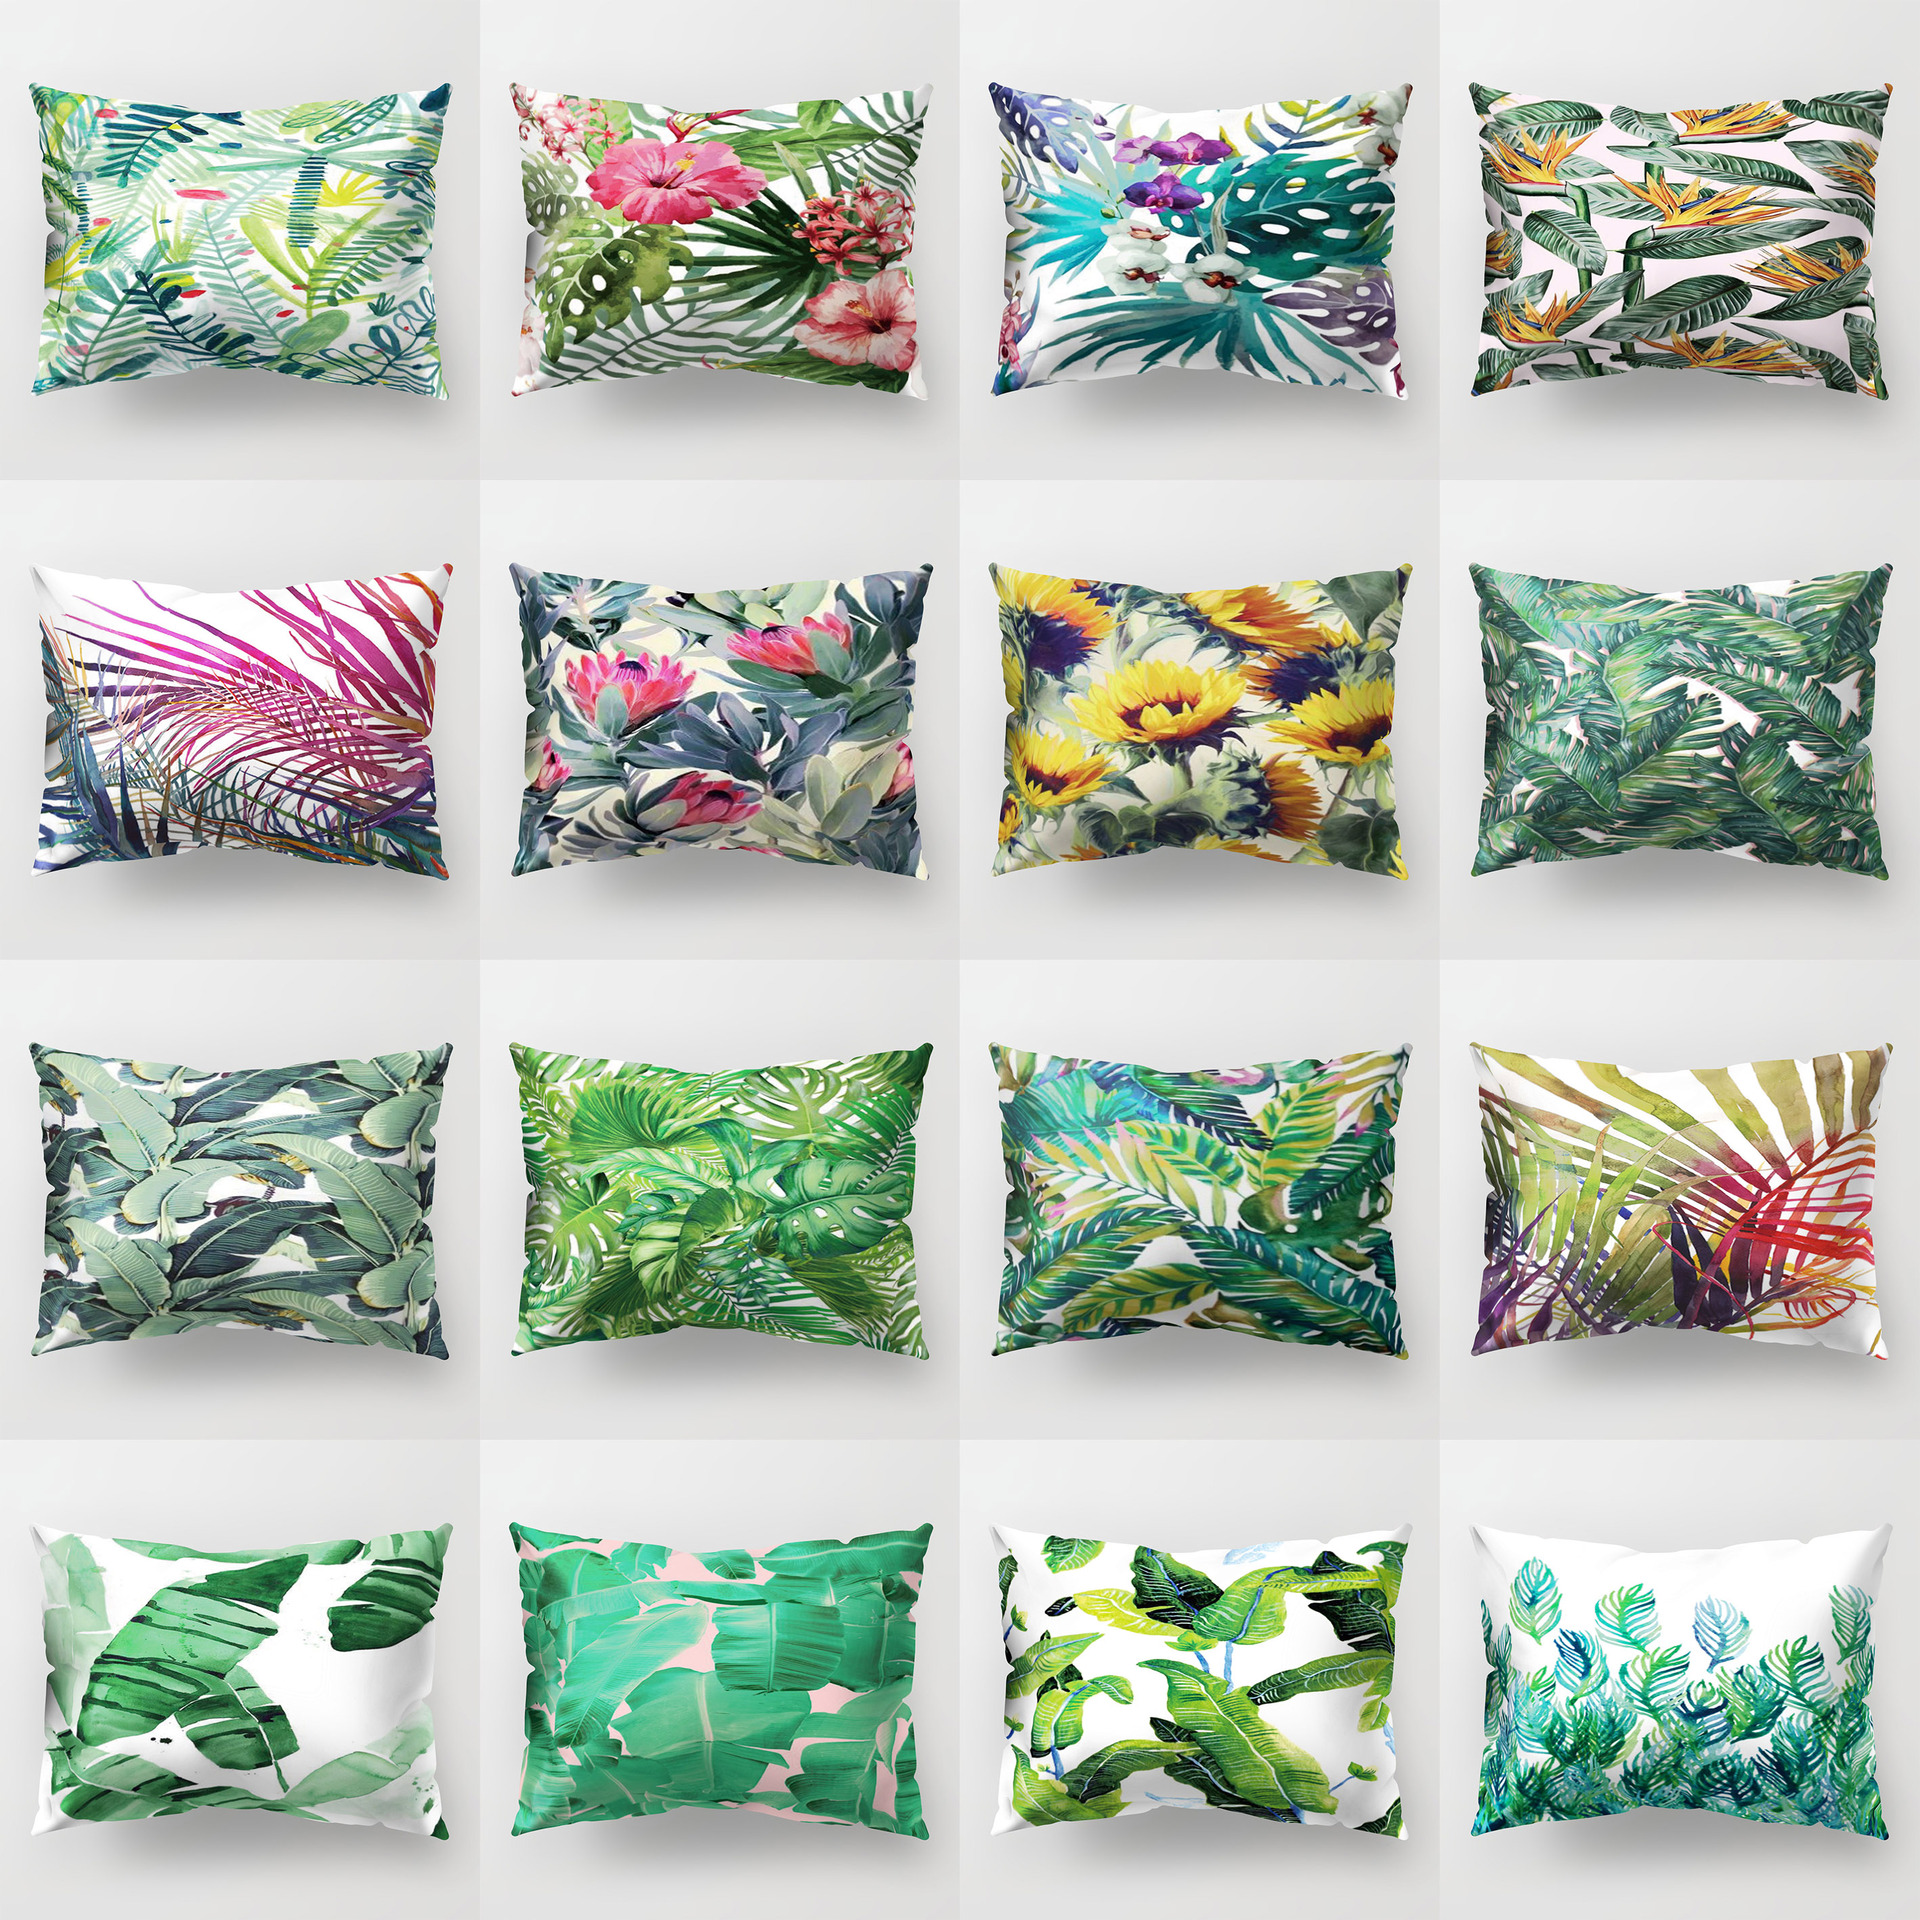 Tropical Leaves Cushion Cover Polyester Green Plants Fresh Pillow Case Summer Home Decor For Sofa Couch Car Decorative 30x50cm